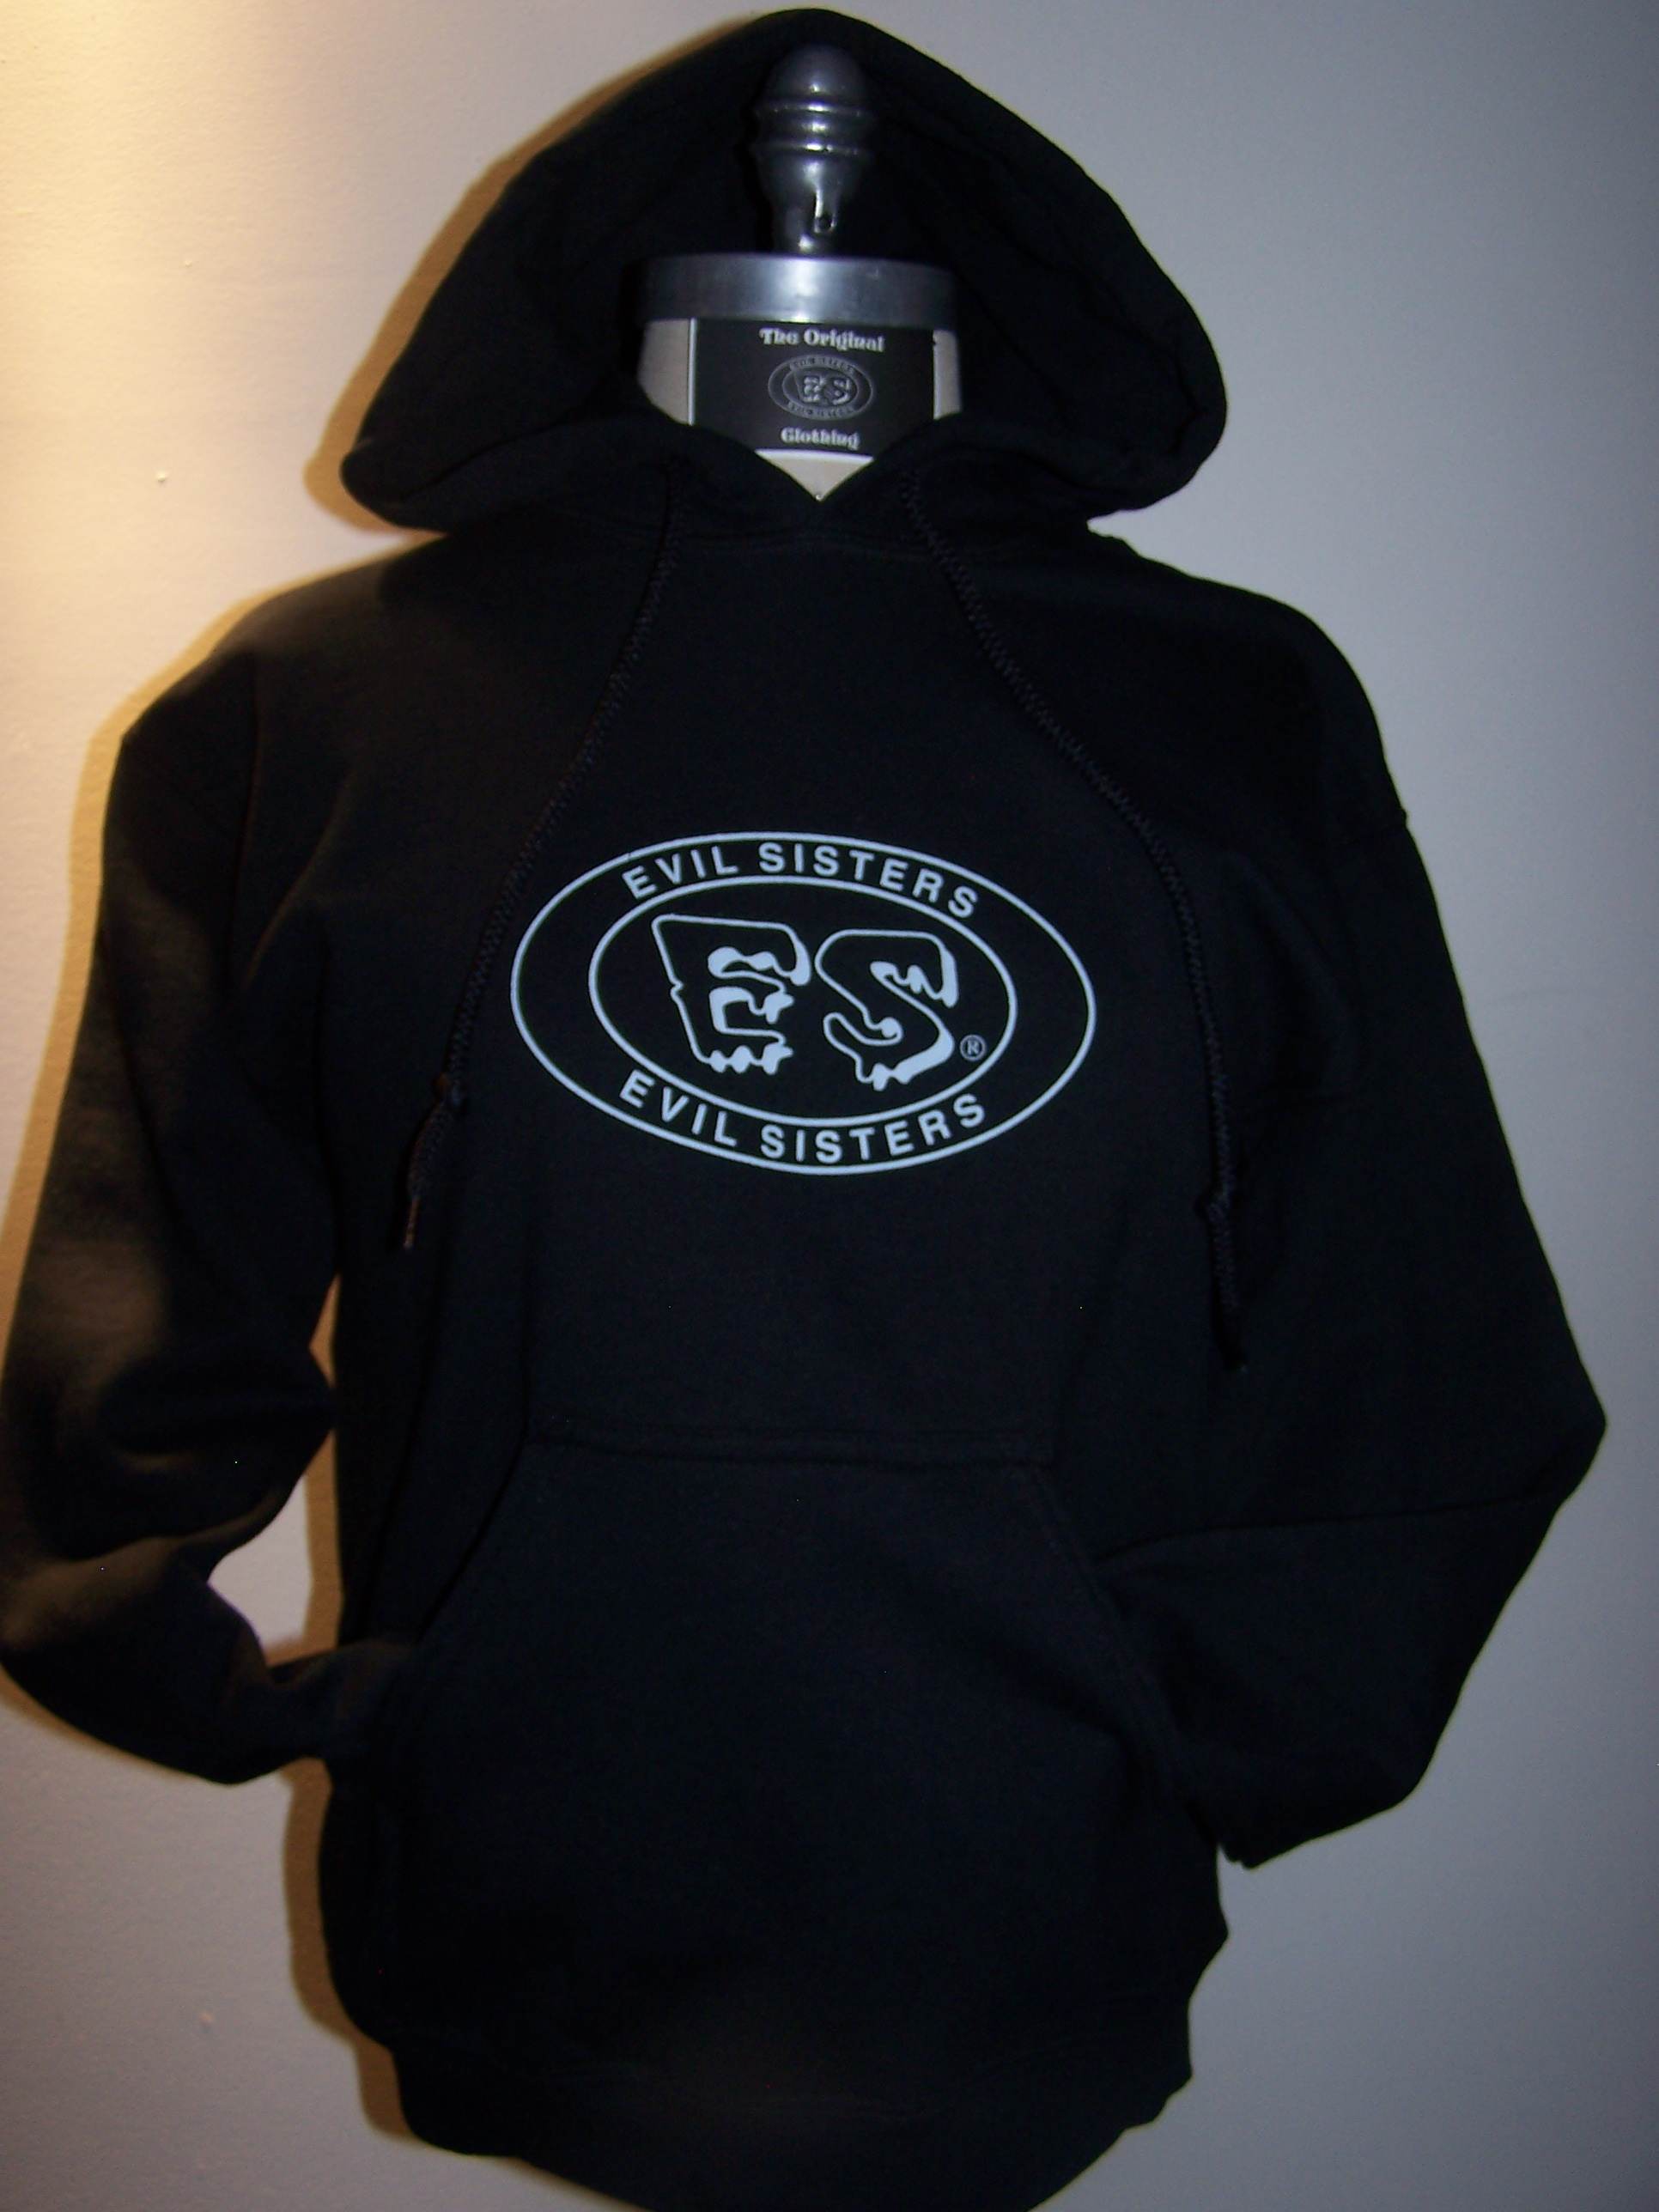 Decree Hooded Sweatshirt 3X